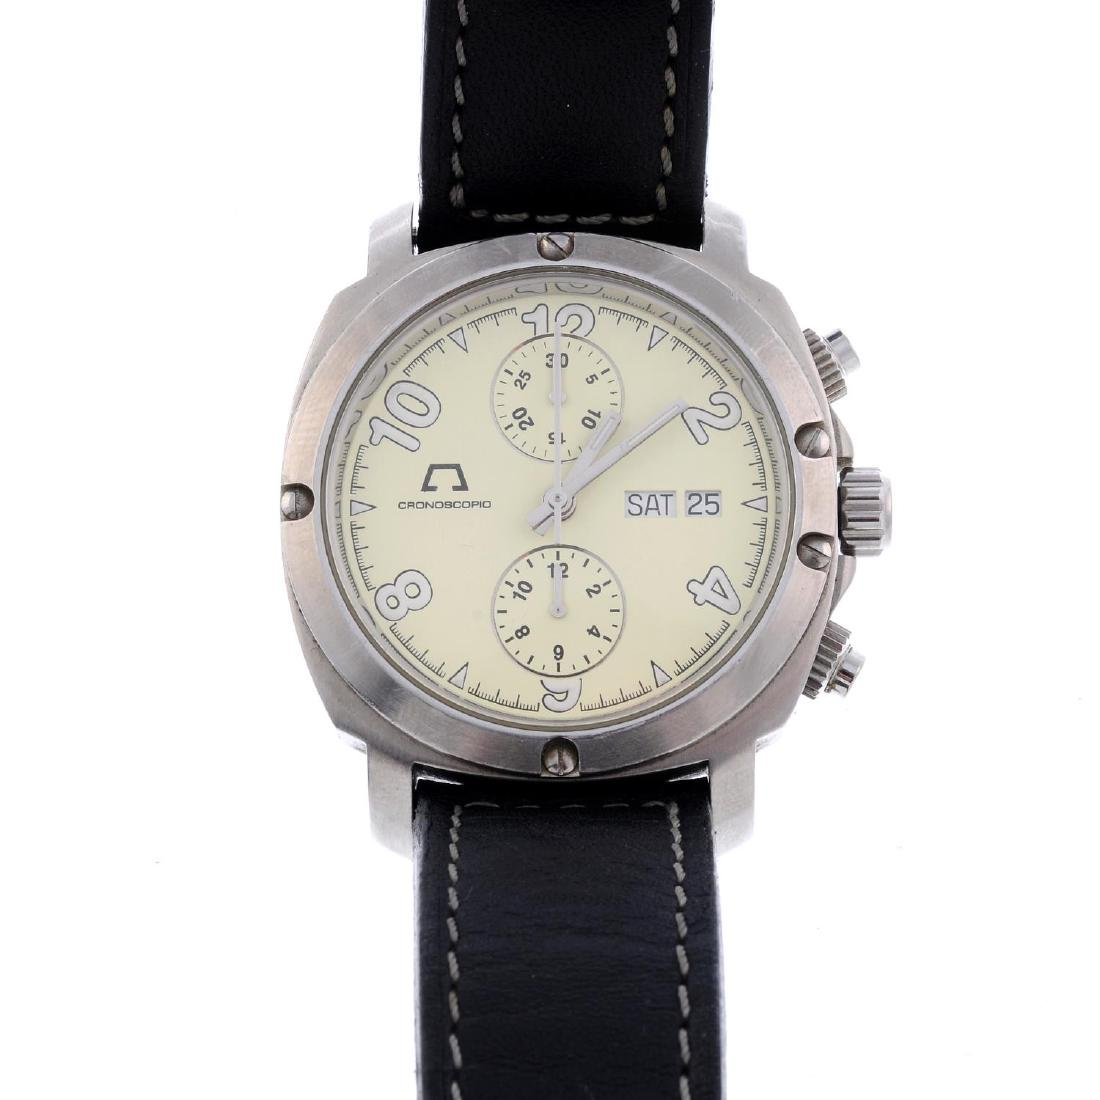 CHRONOSCOPIA - a gentleman's chronograph wrist watch.